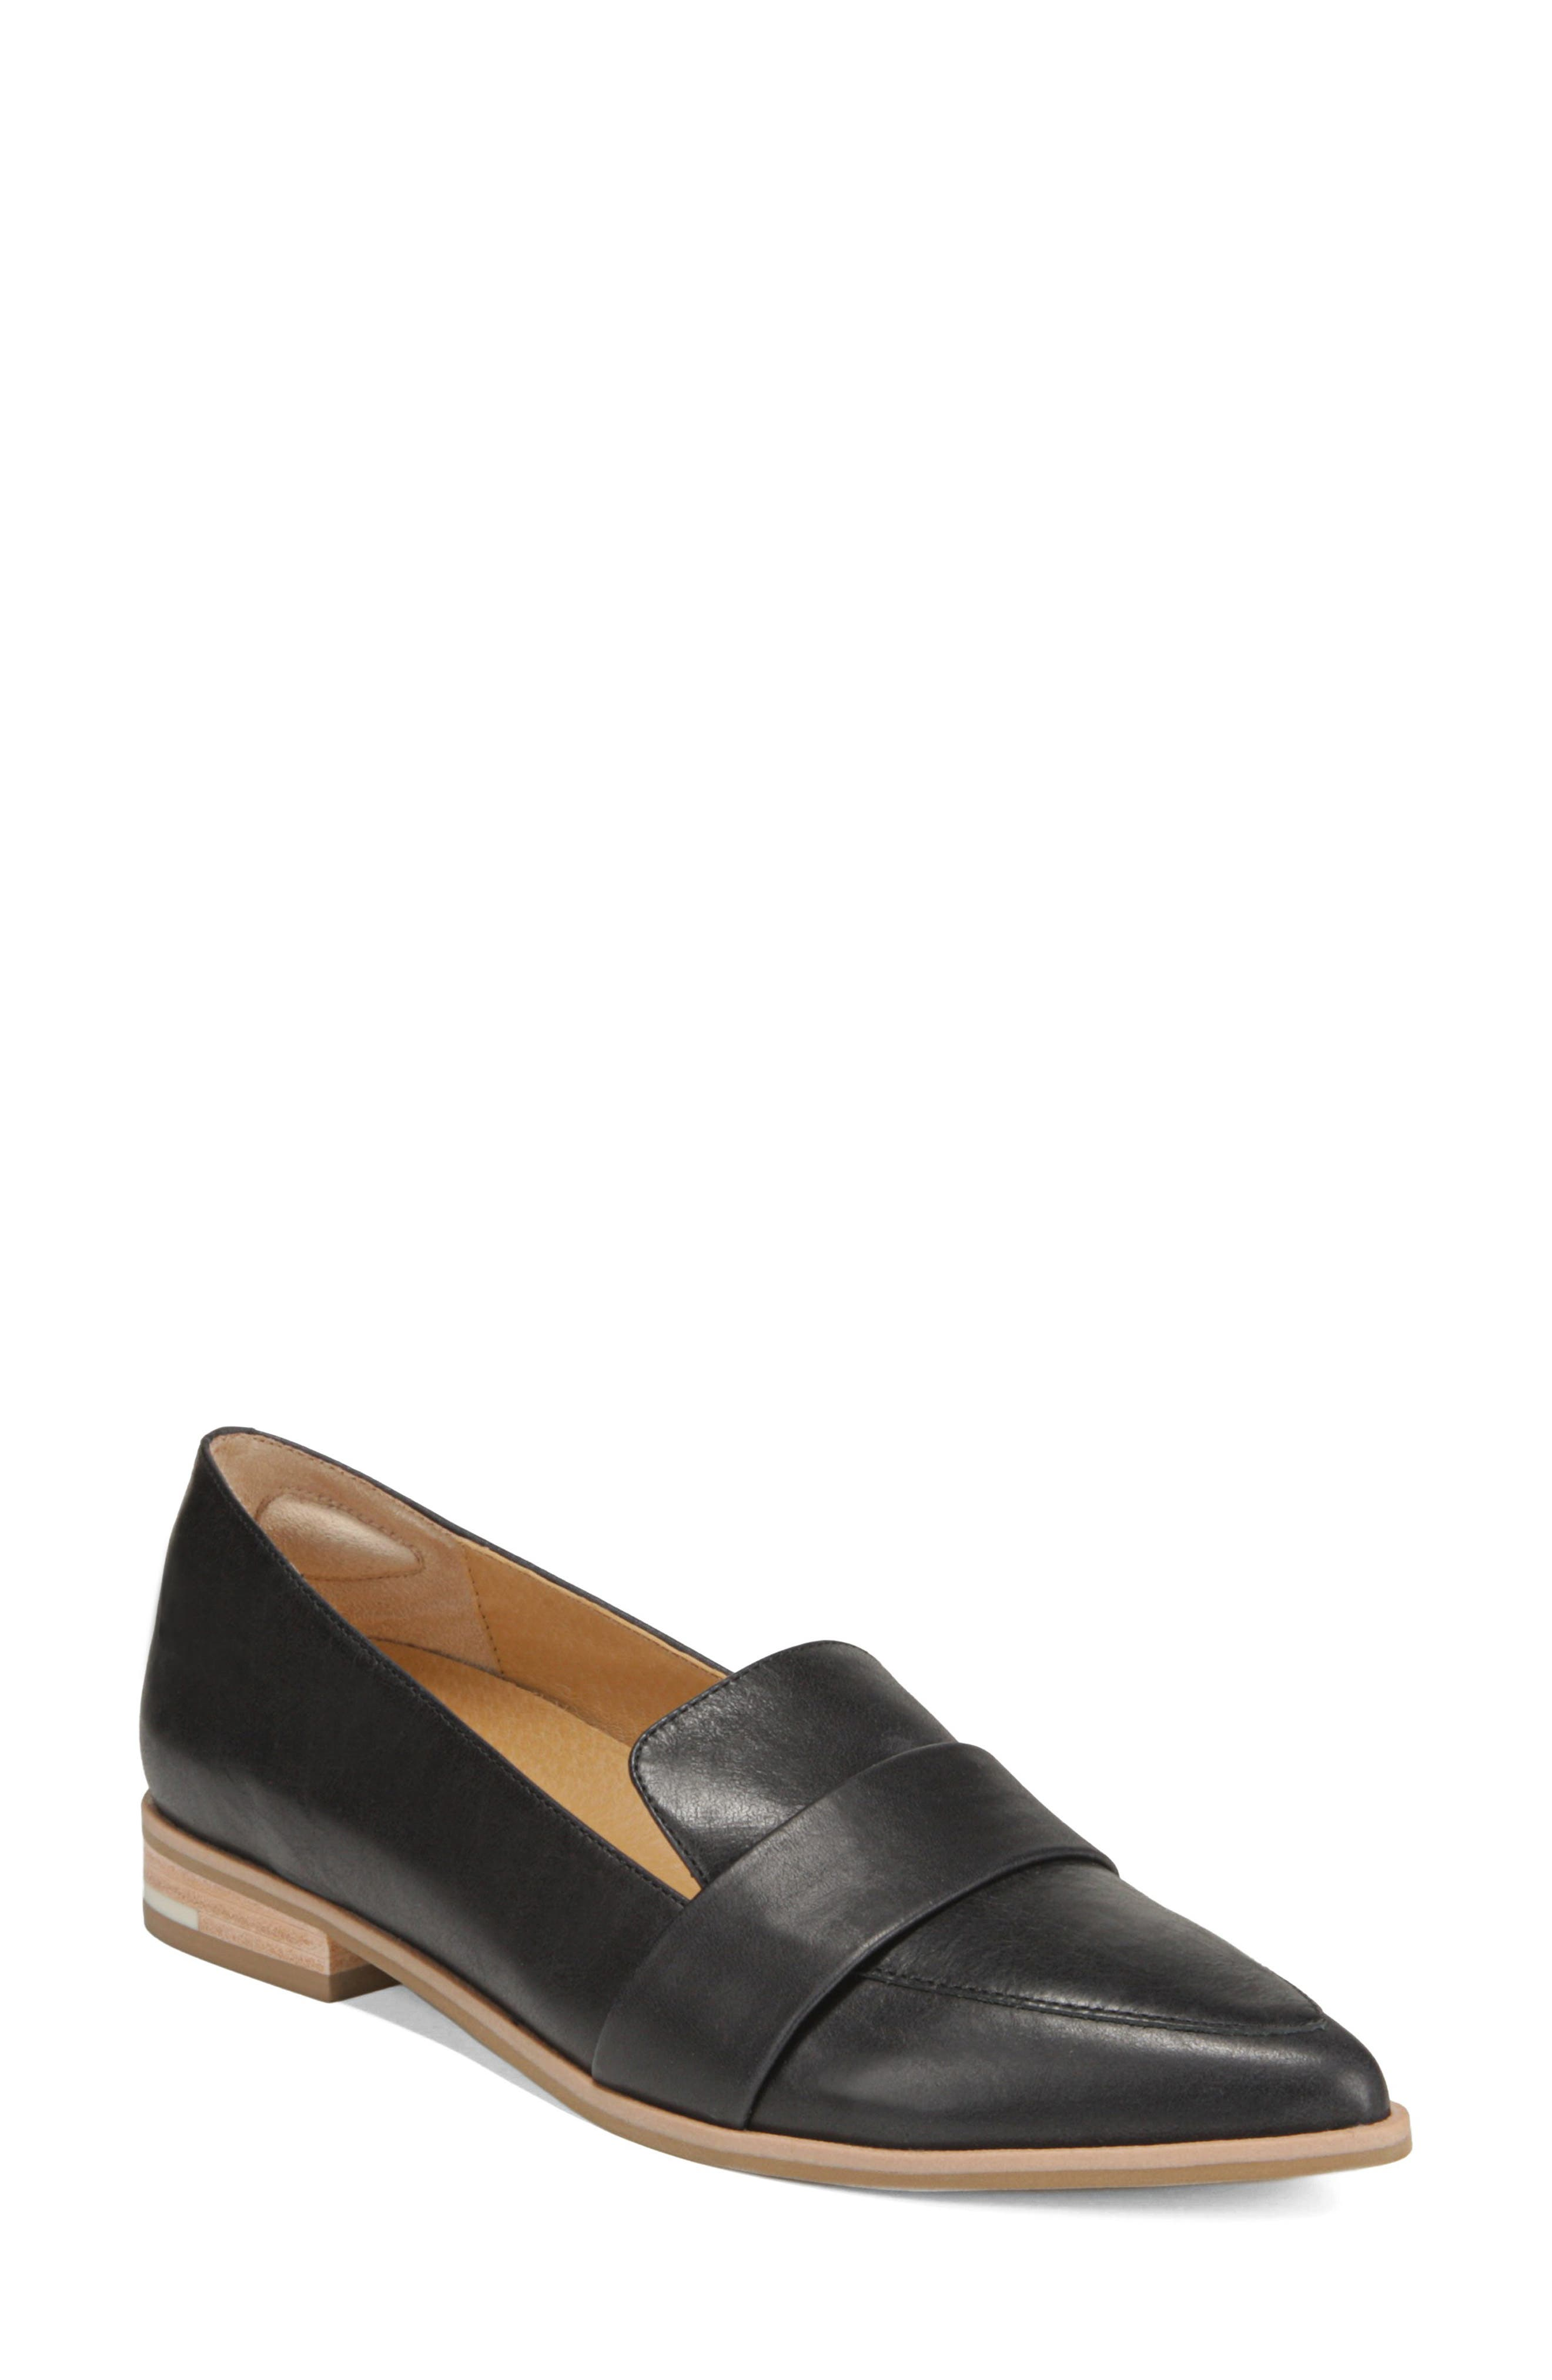 DR. SCHOLL'S, Faxon Loafer, Main thumbnail 1, color, BLACK LEATHER